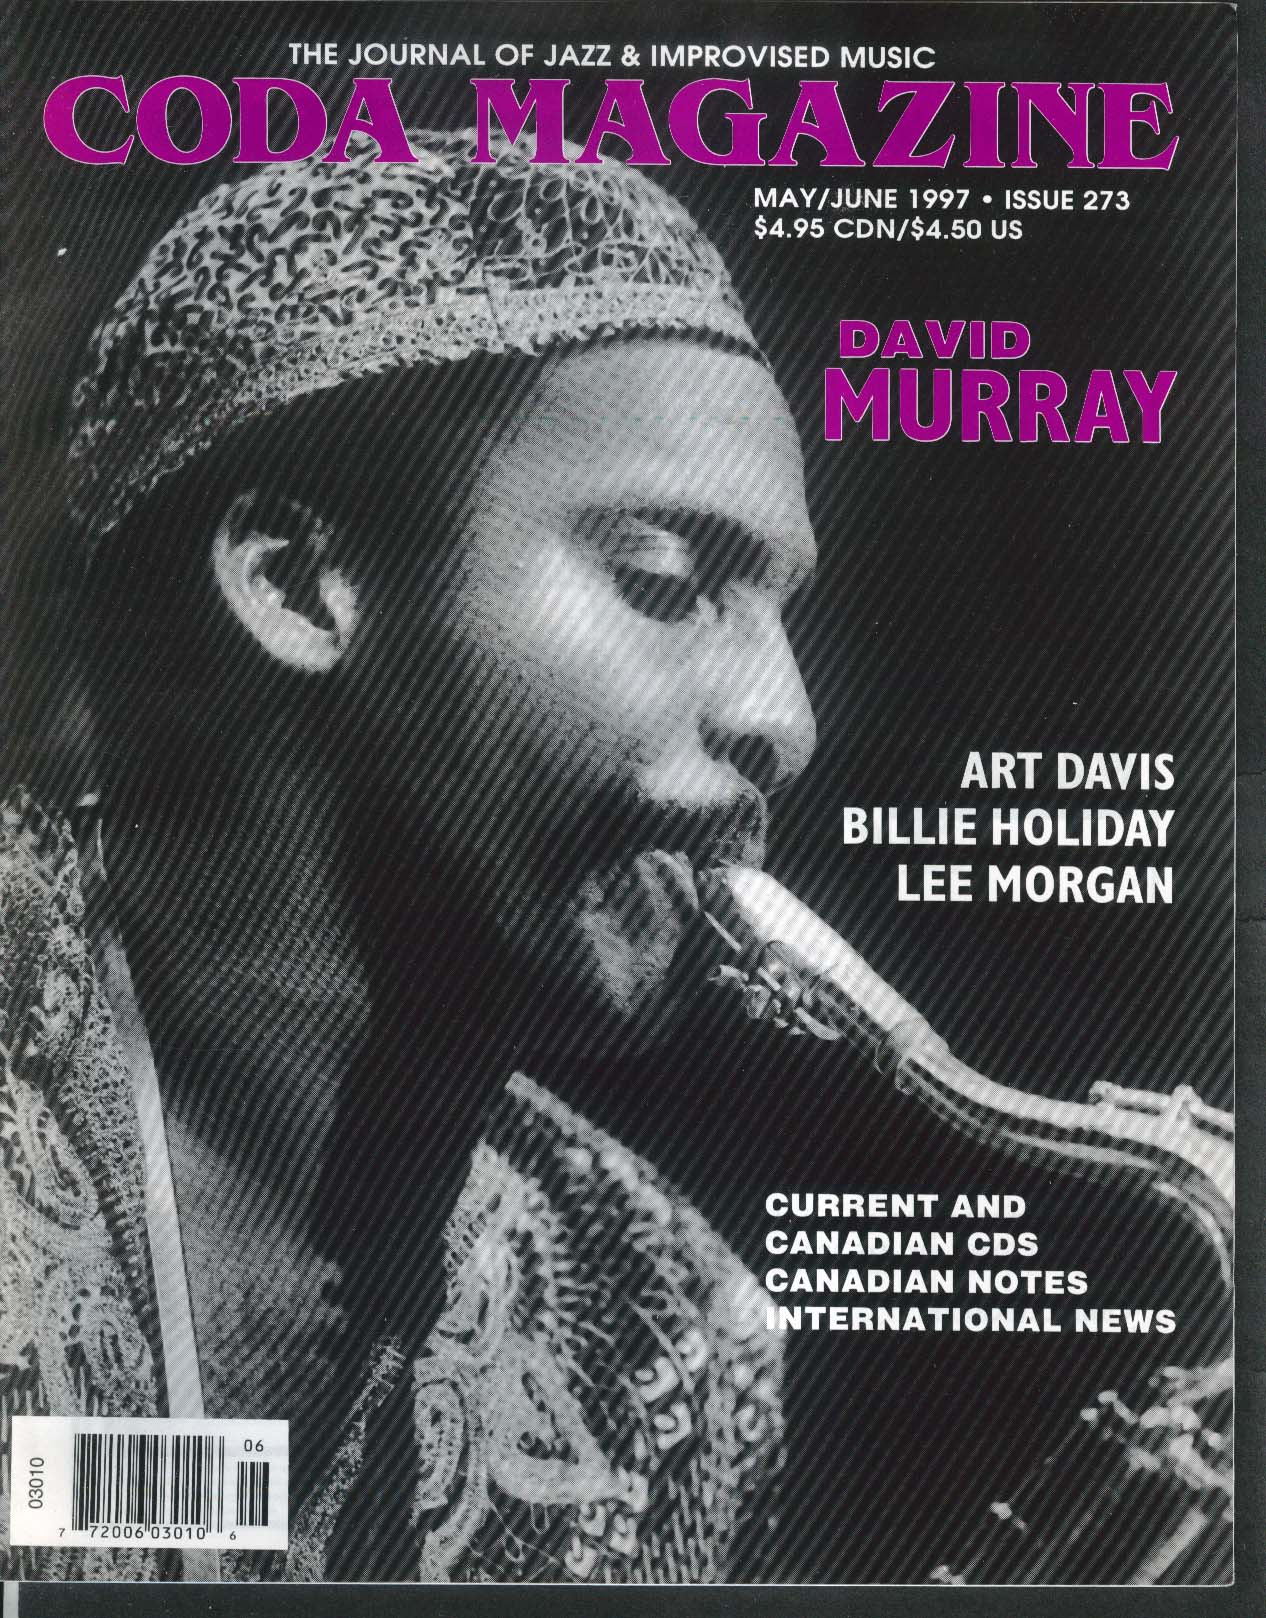 CODA #273 David Murray Art Davis Billie Holiday Lee Morgan 5-6 1997